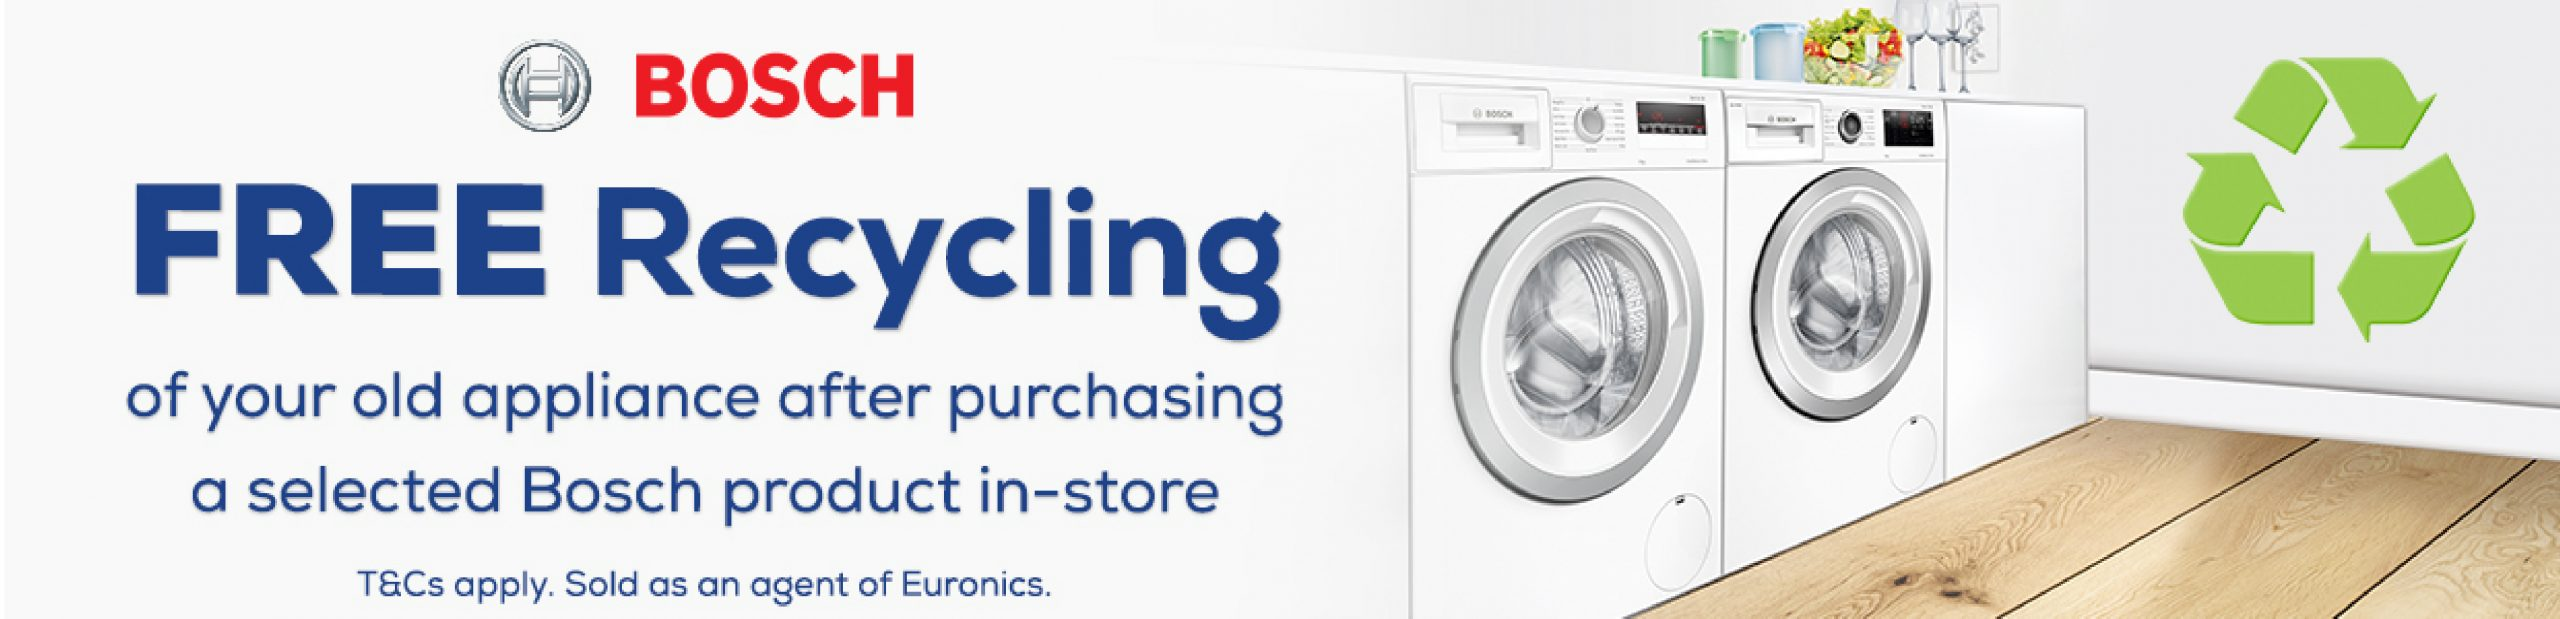 Bosch Free Recycle Web Banner